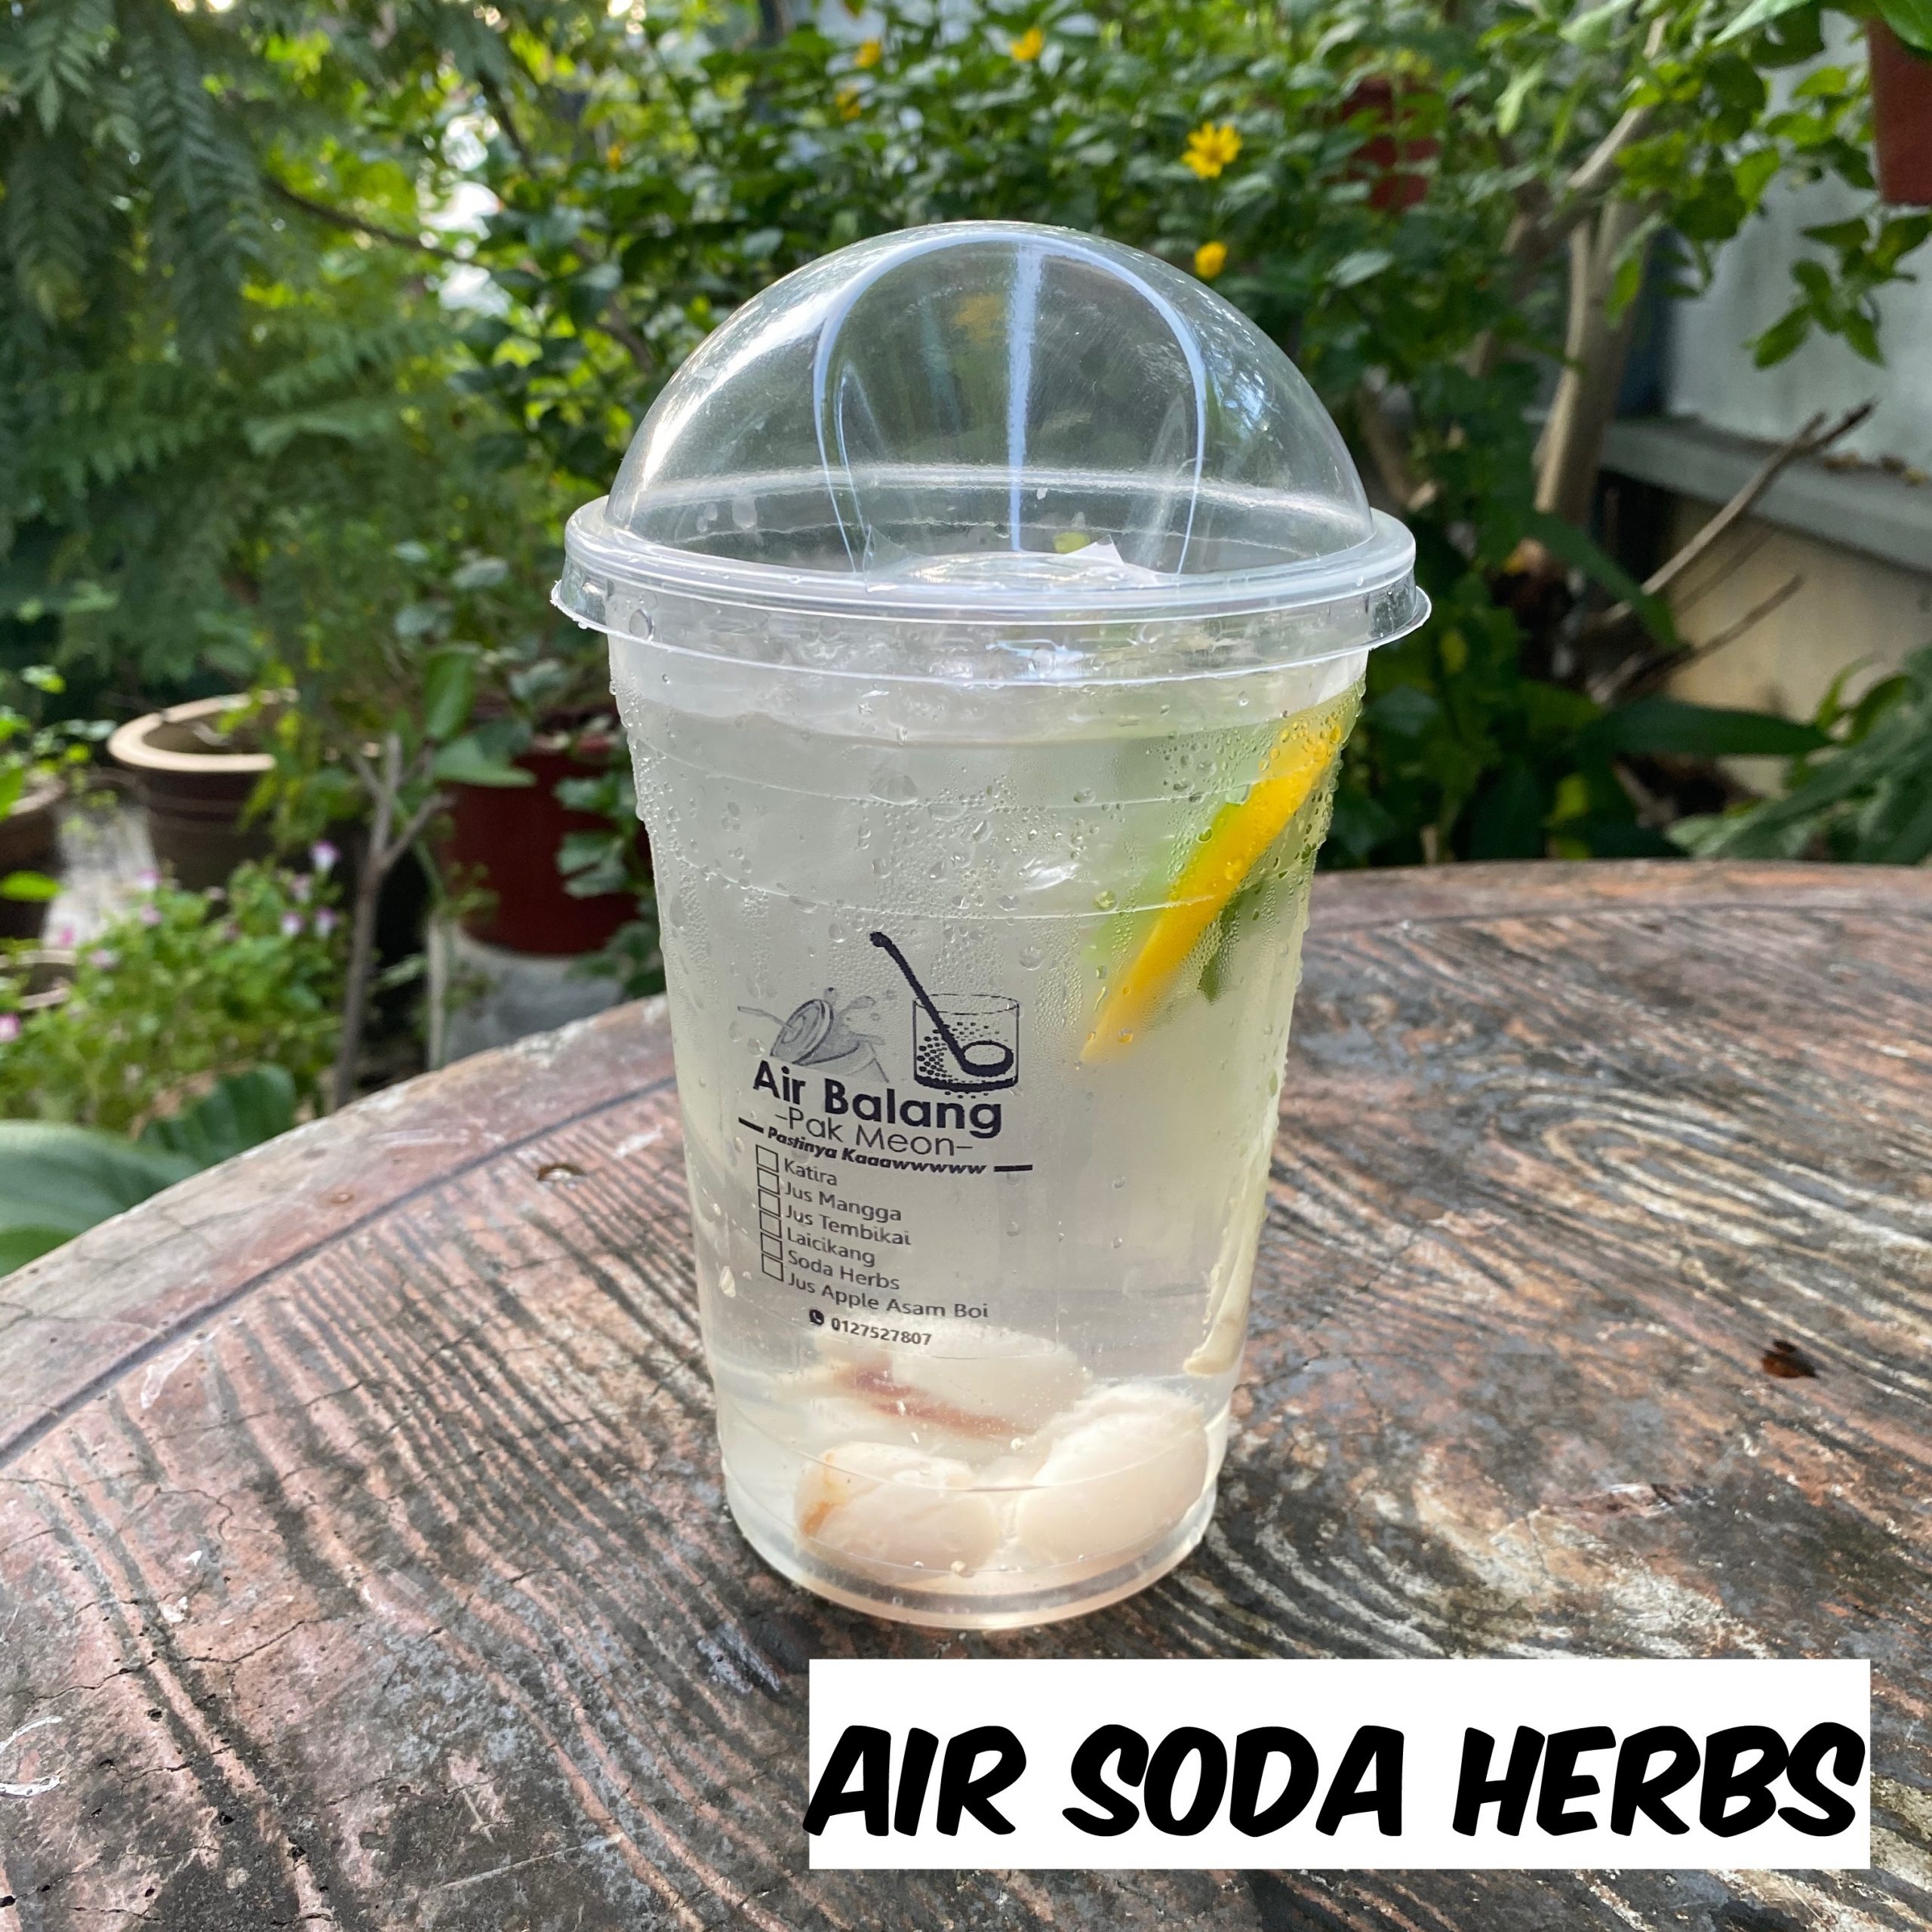 Air Soda Herbs